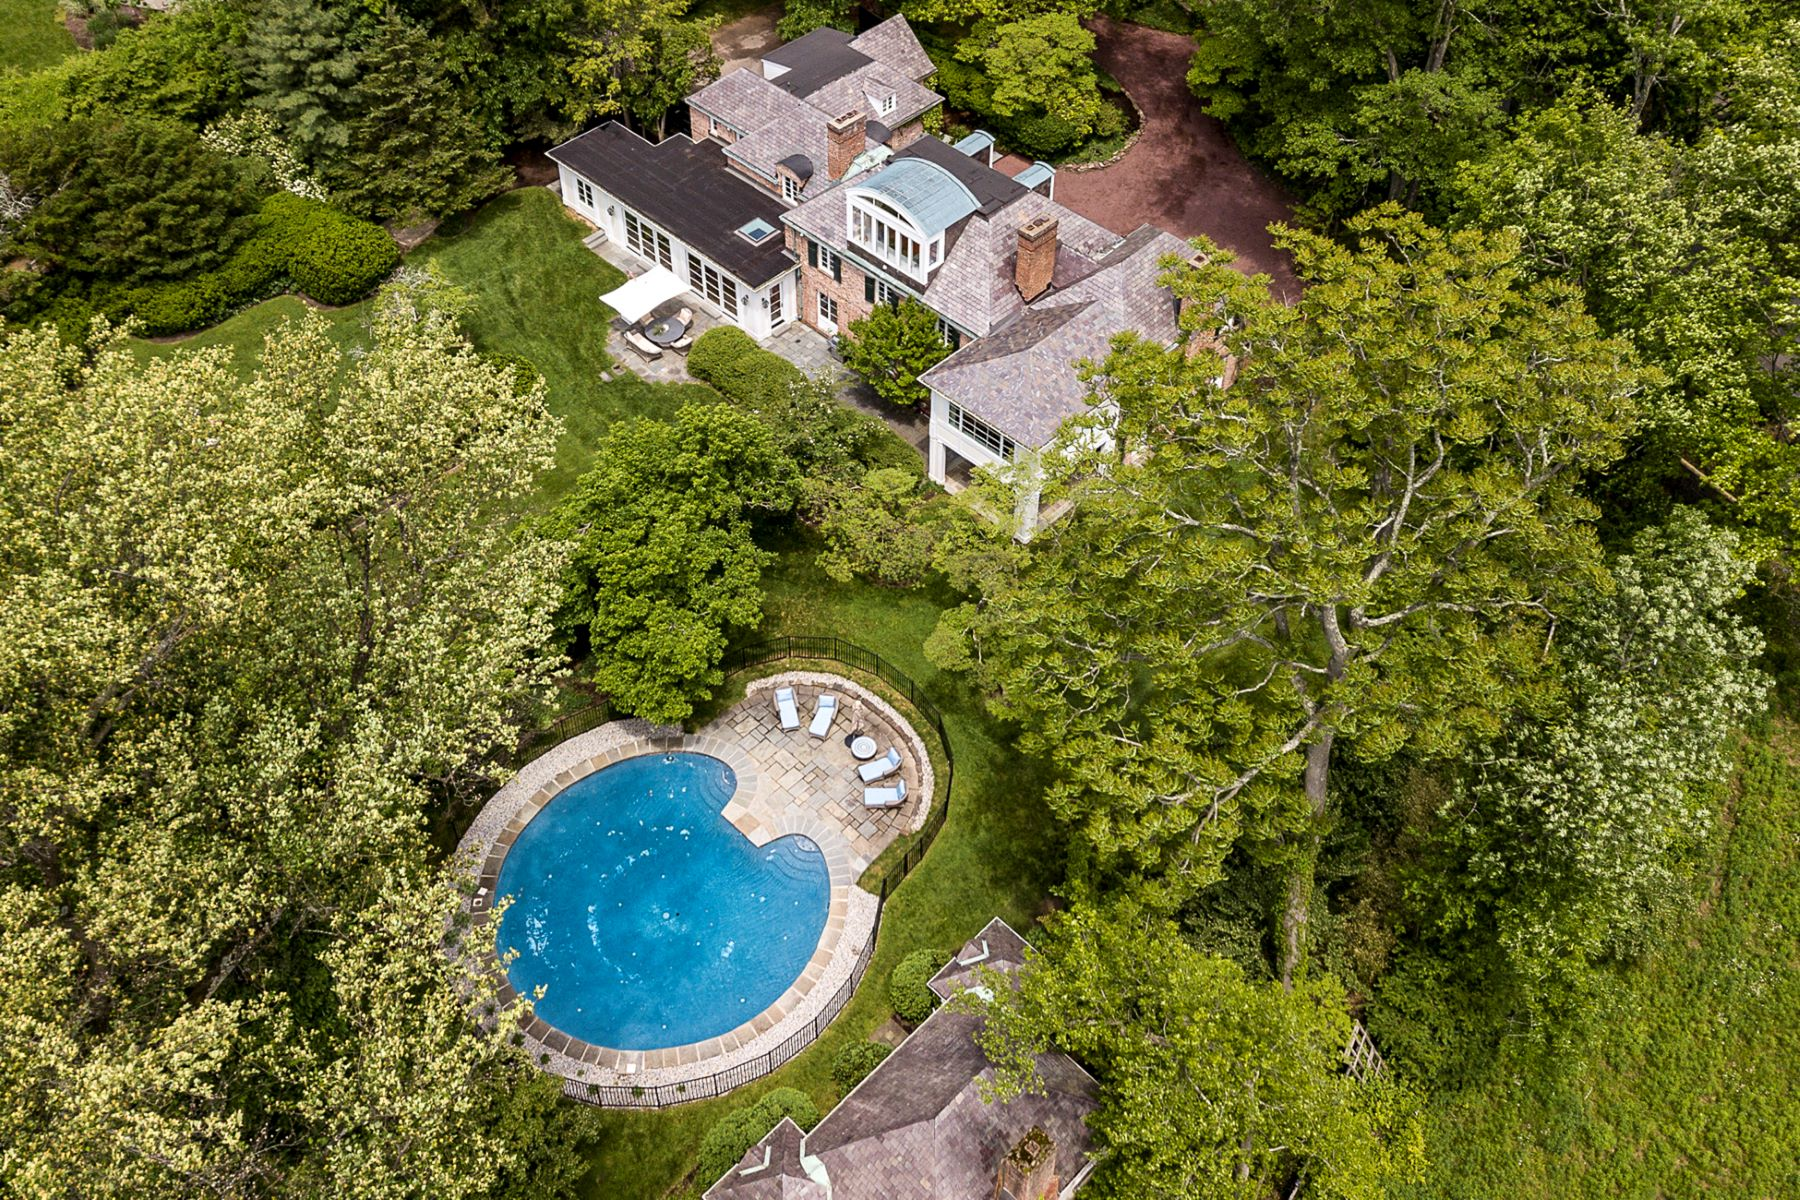 Single Family Homes for Sale at Classic Form, Modern Function, Near-Town Locale 20 Elm Road, Princeton, New Jersey 08540 United States